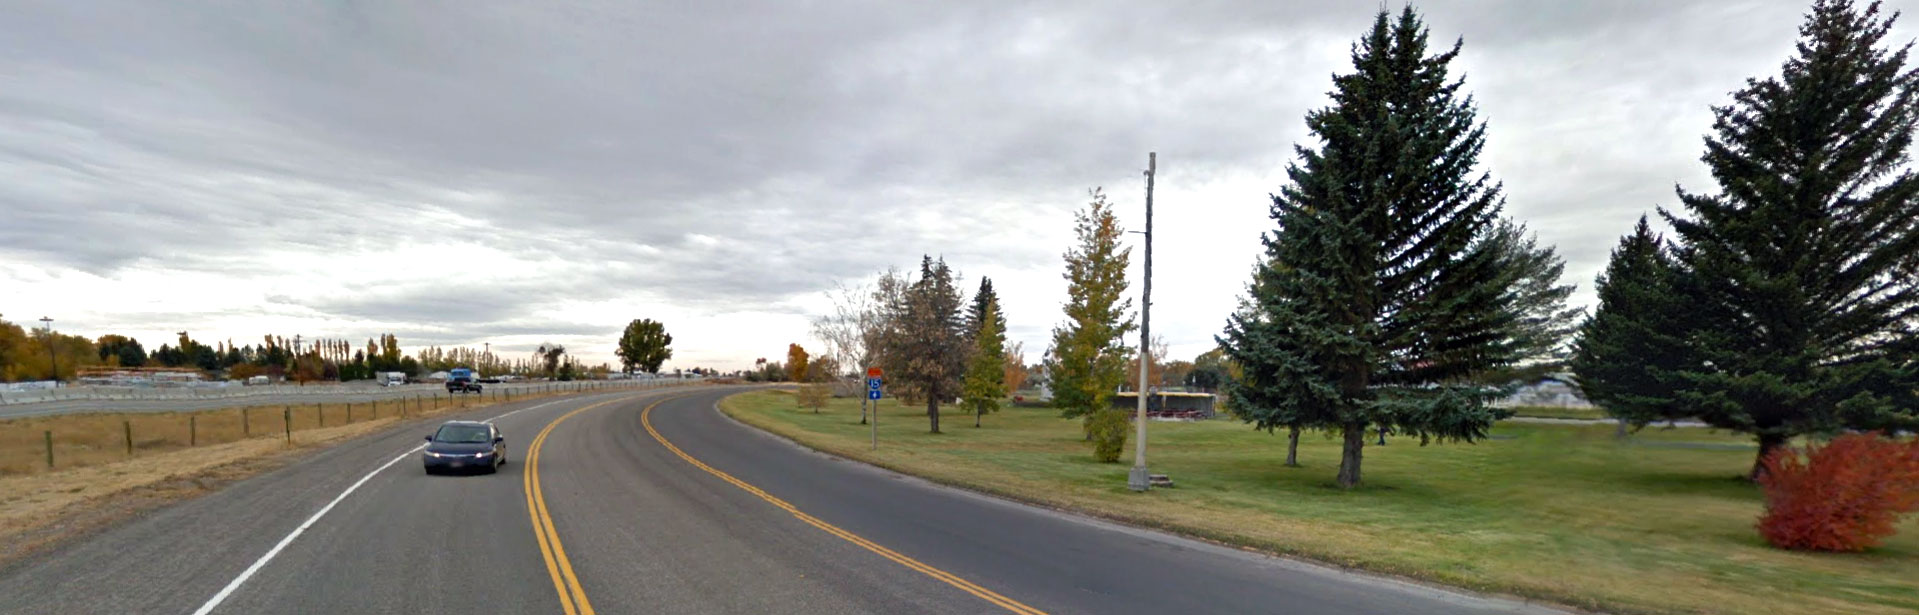 A street view in Rigby, Idaho